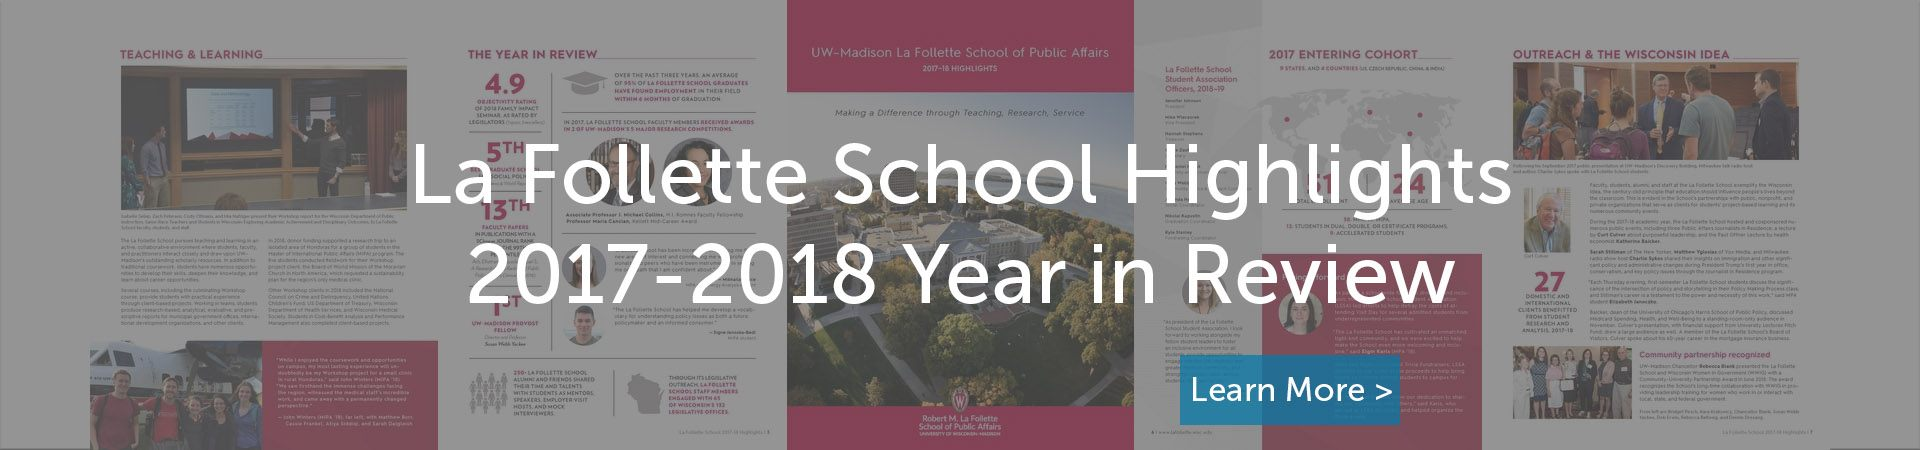 La Follette School Highlights 2016-2017